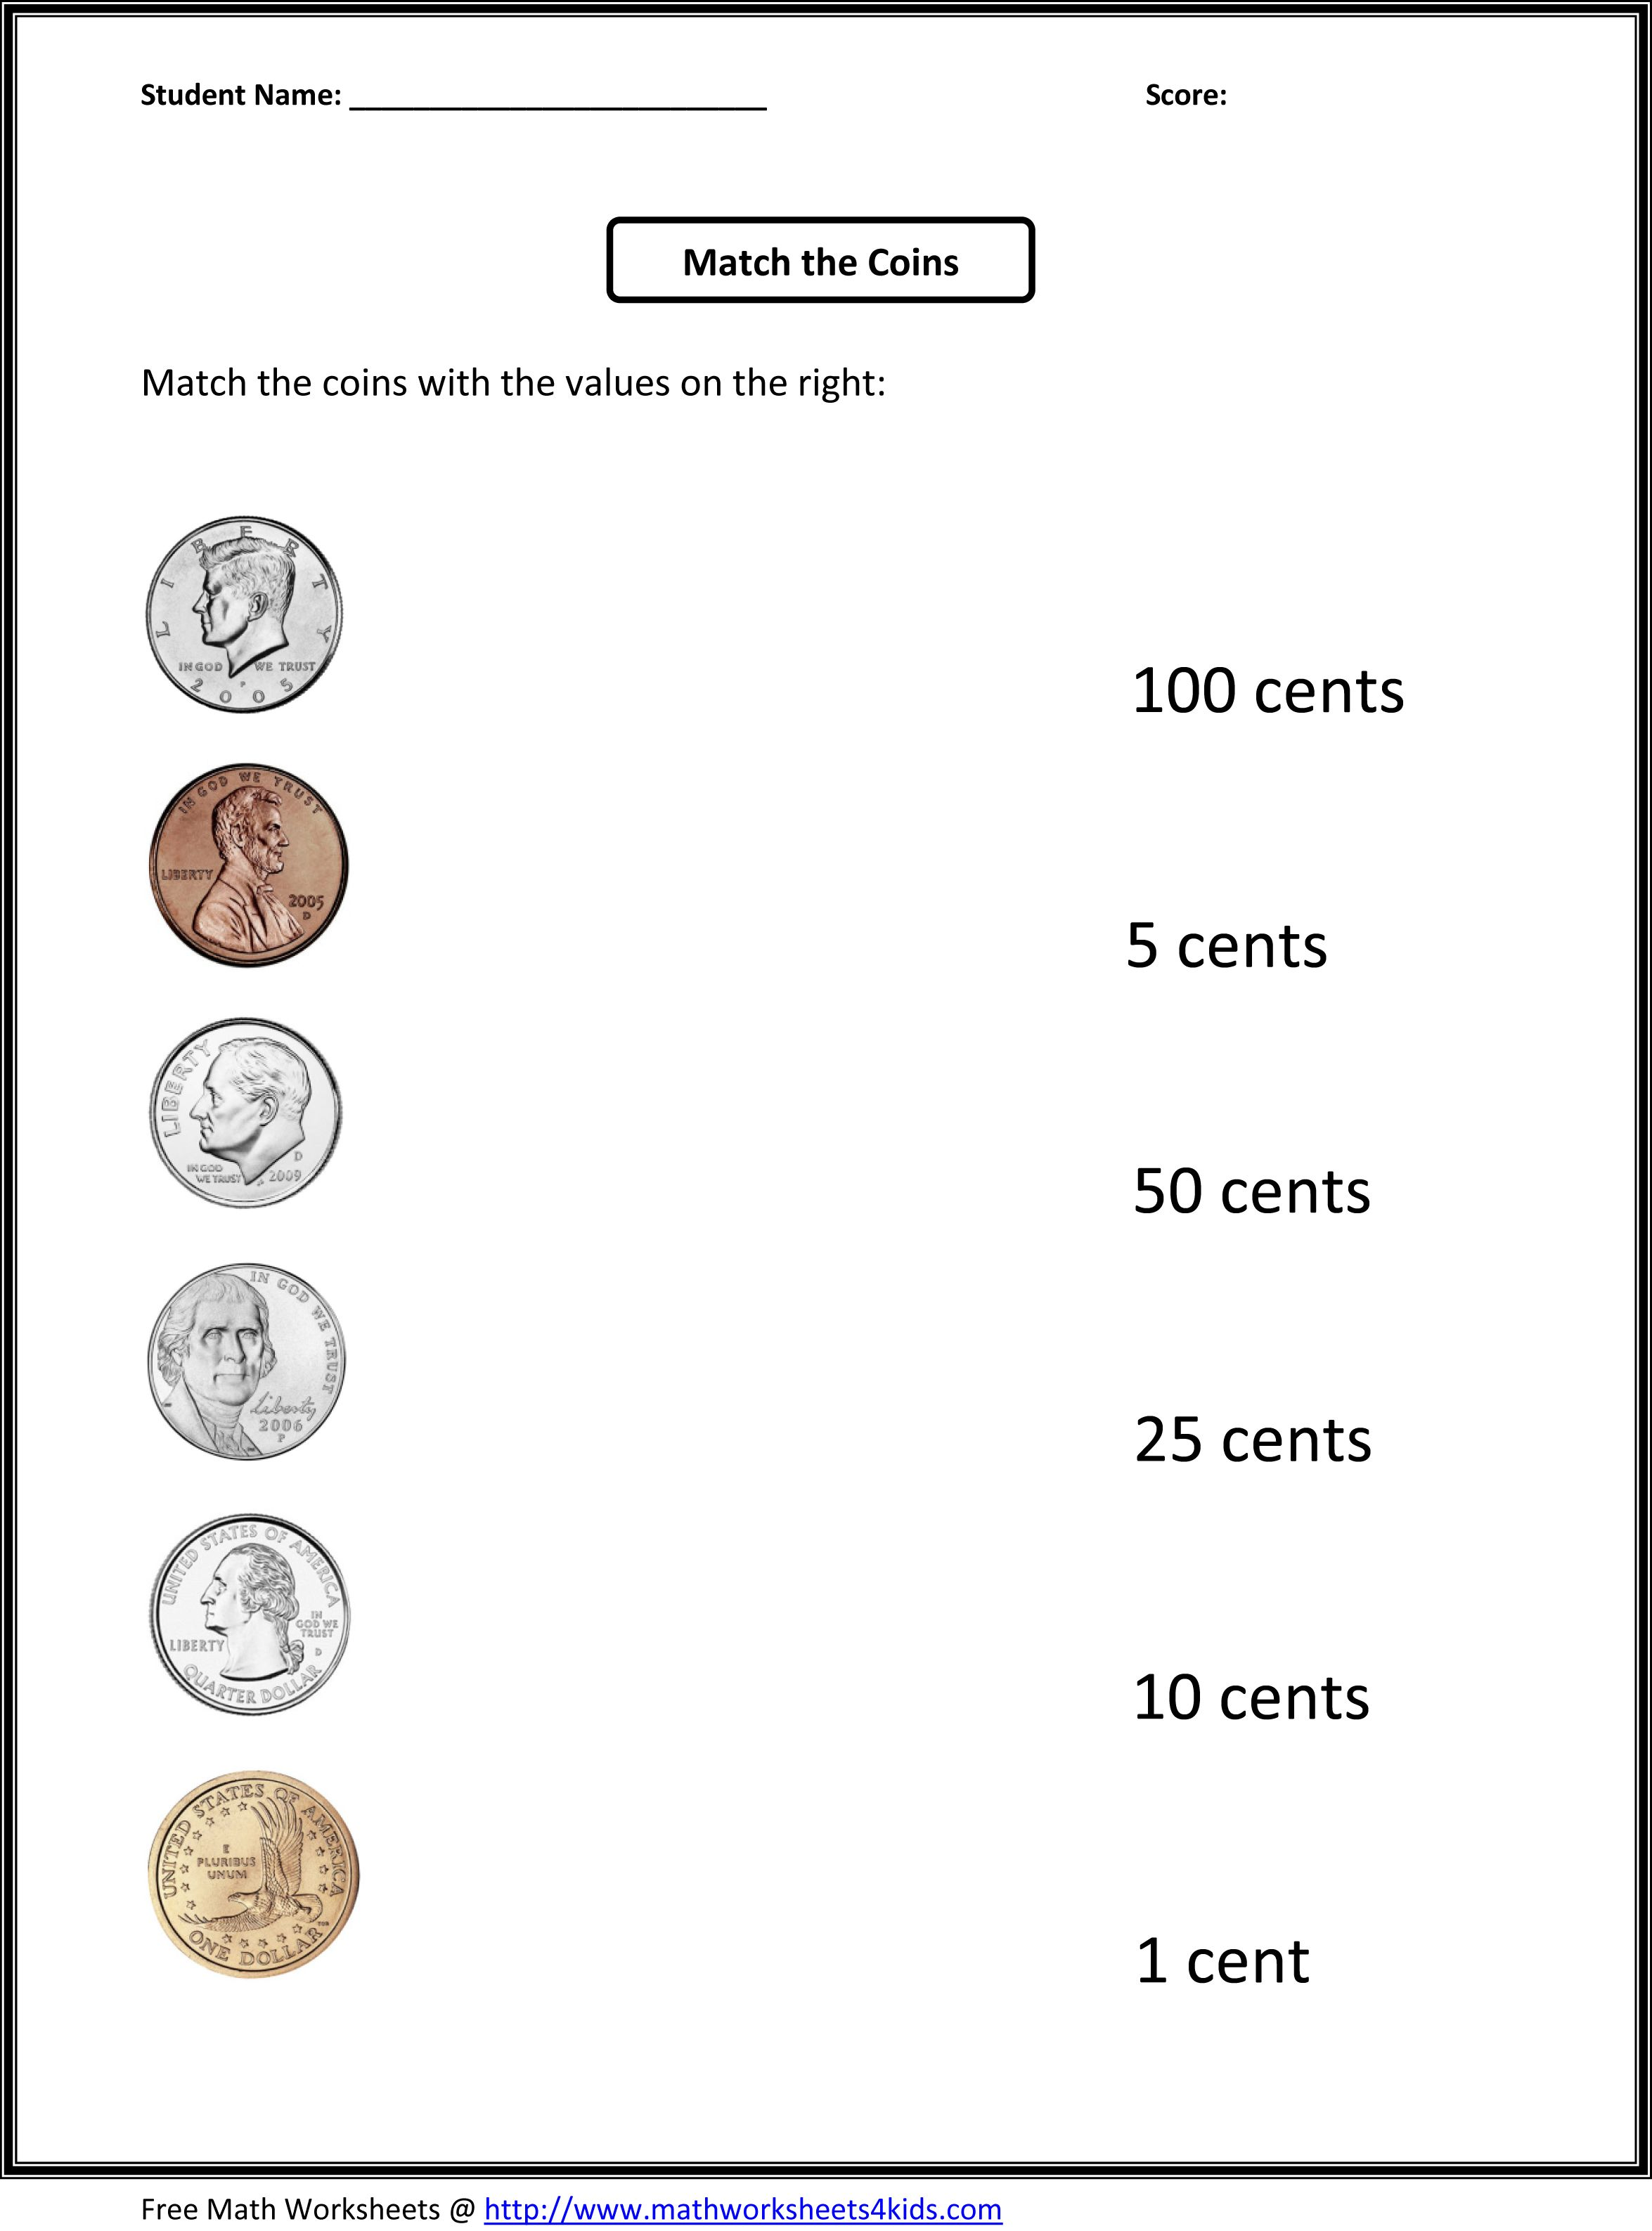 Worksheets Free Math Worksheets For 1st Graders free 1st grade worksheets match the coins and its values first math worksheets